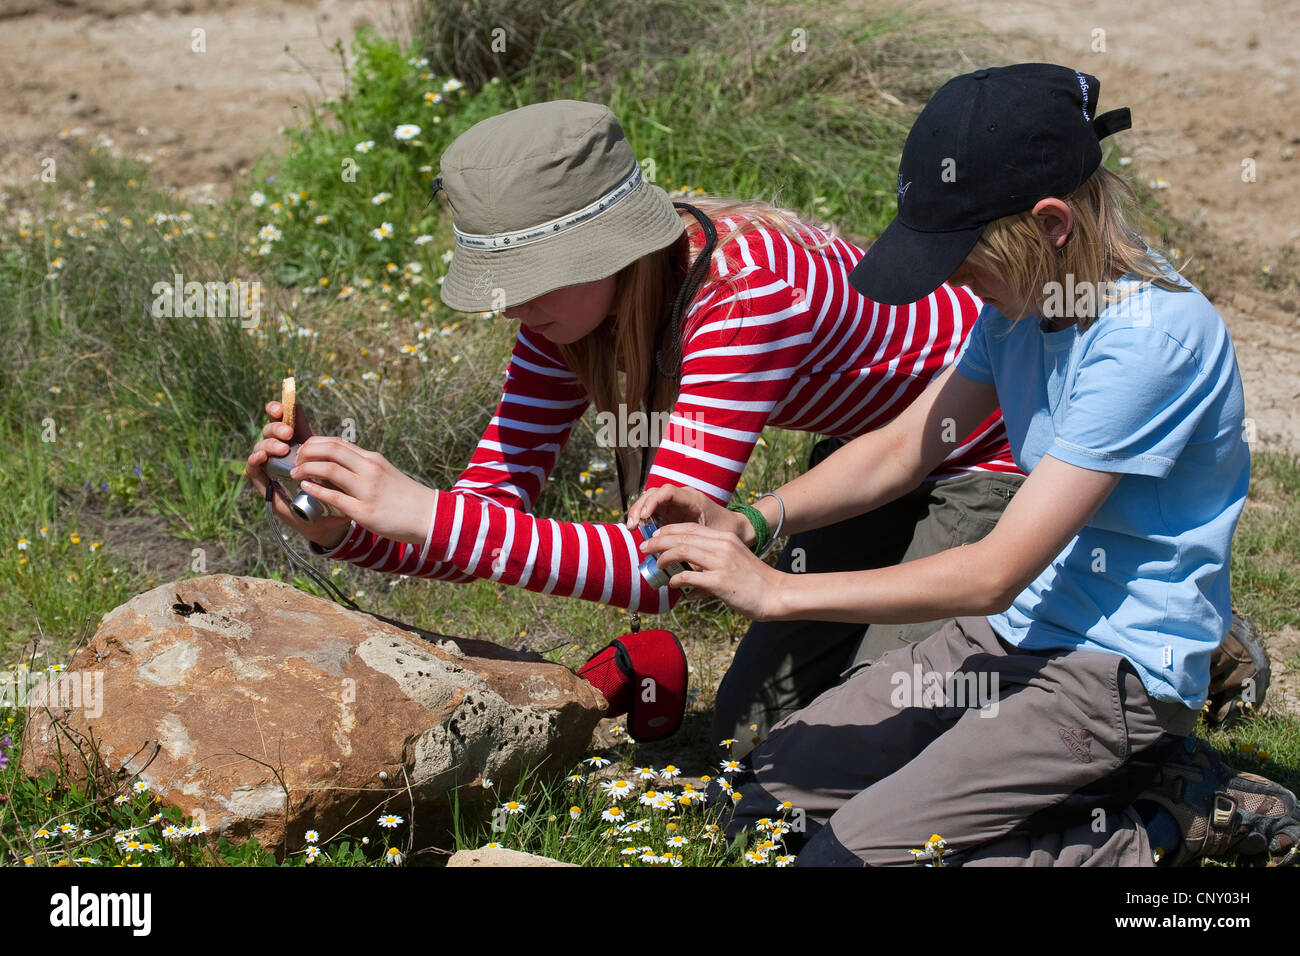 wall bee, mason bee (Megachile parietina, Chalicodoma parietina, Chalicodoma muraria), two children taking photos - Stock Image